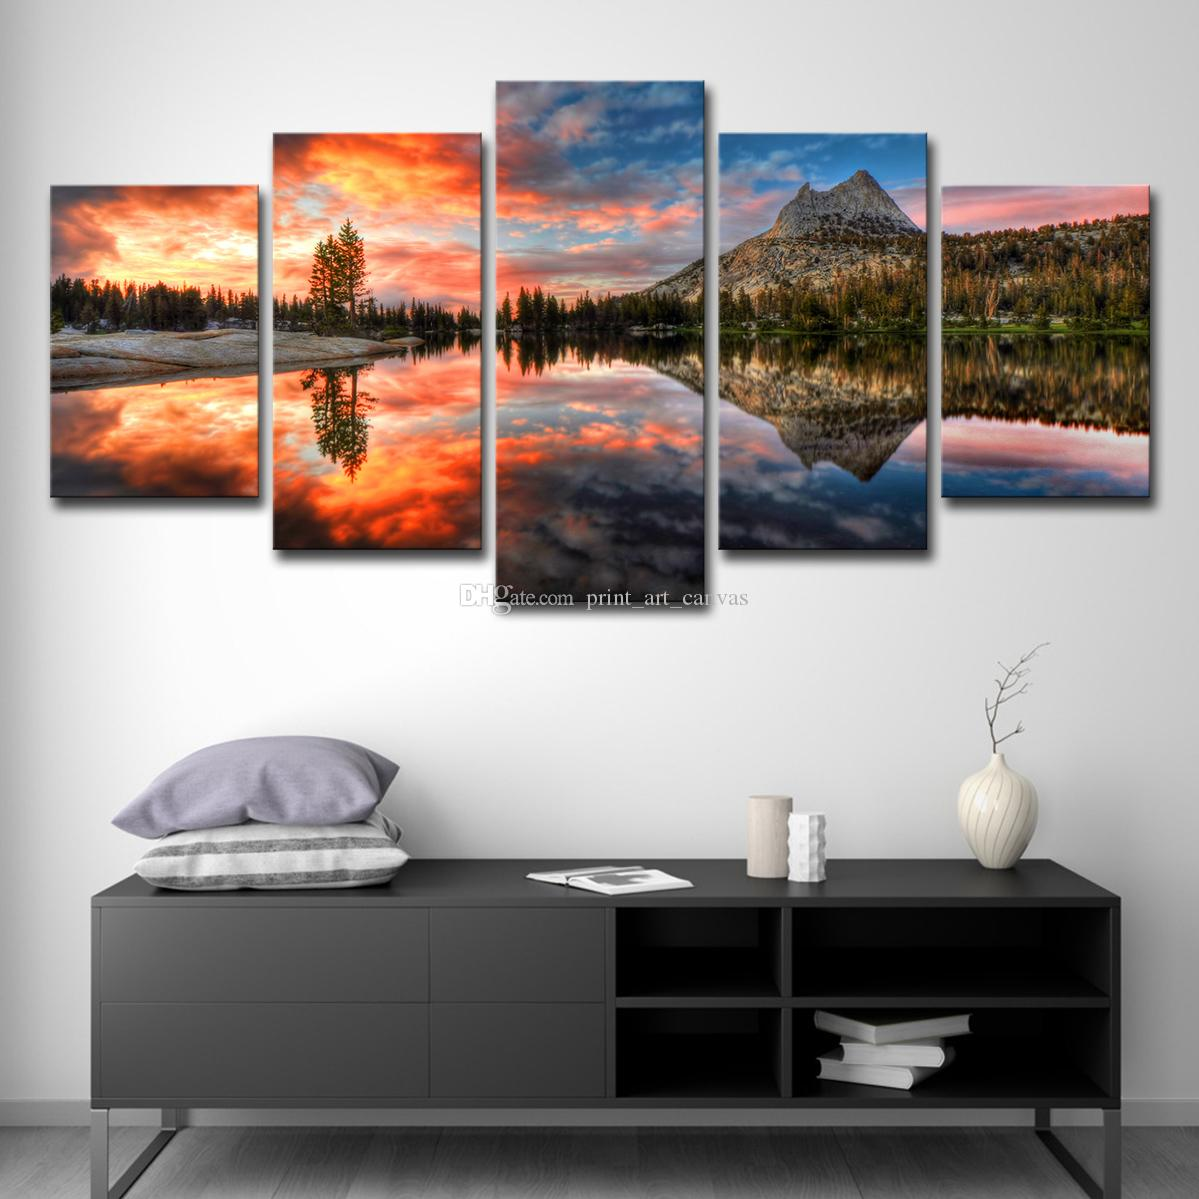 Hd printed modular pictures canvas painting for bedroom home decor 5 panel still sunset landscape poster wall art